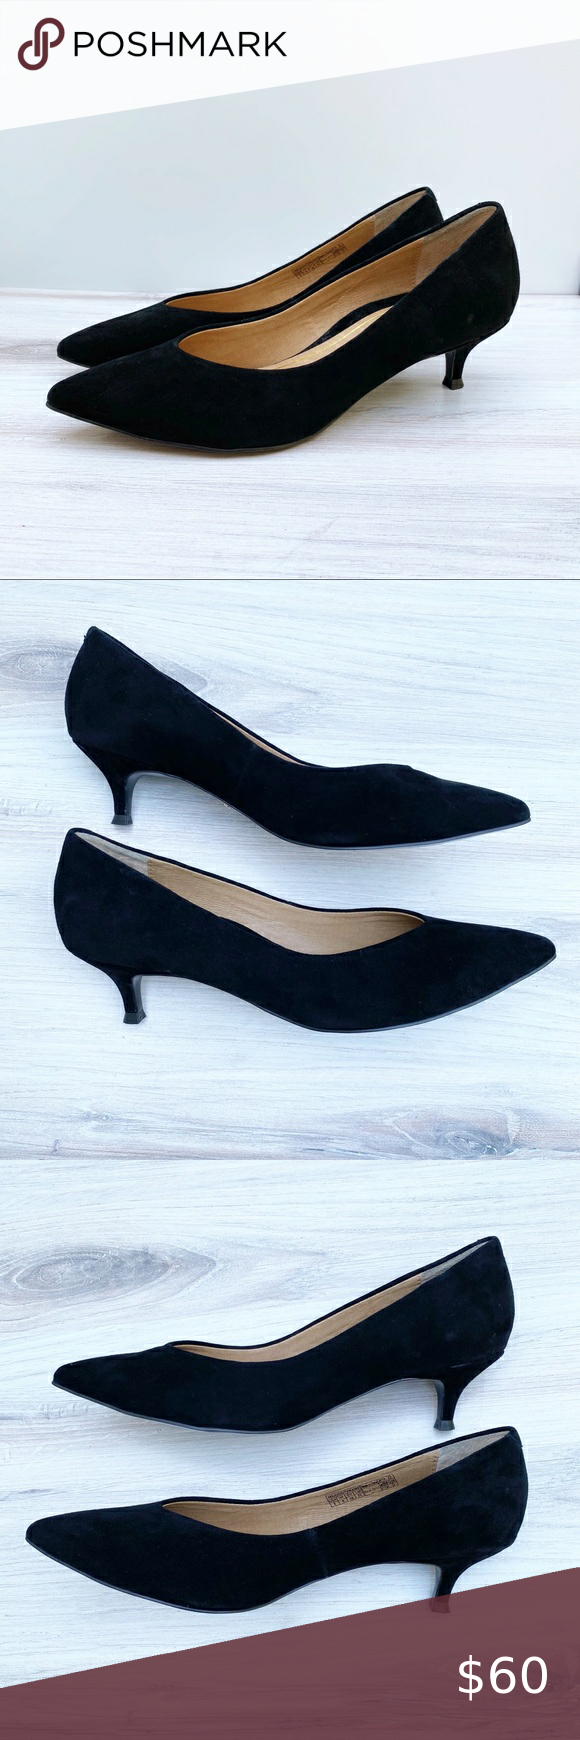 Vionic Josie Pointed Toe Suede Leather Pumps In 2020 Leather Pumps Suede Leather Shoes Women Heels